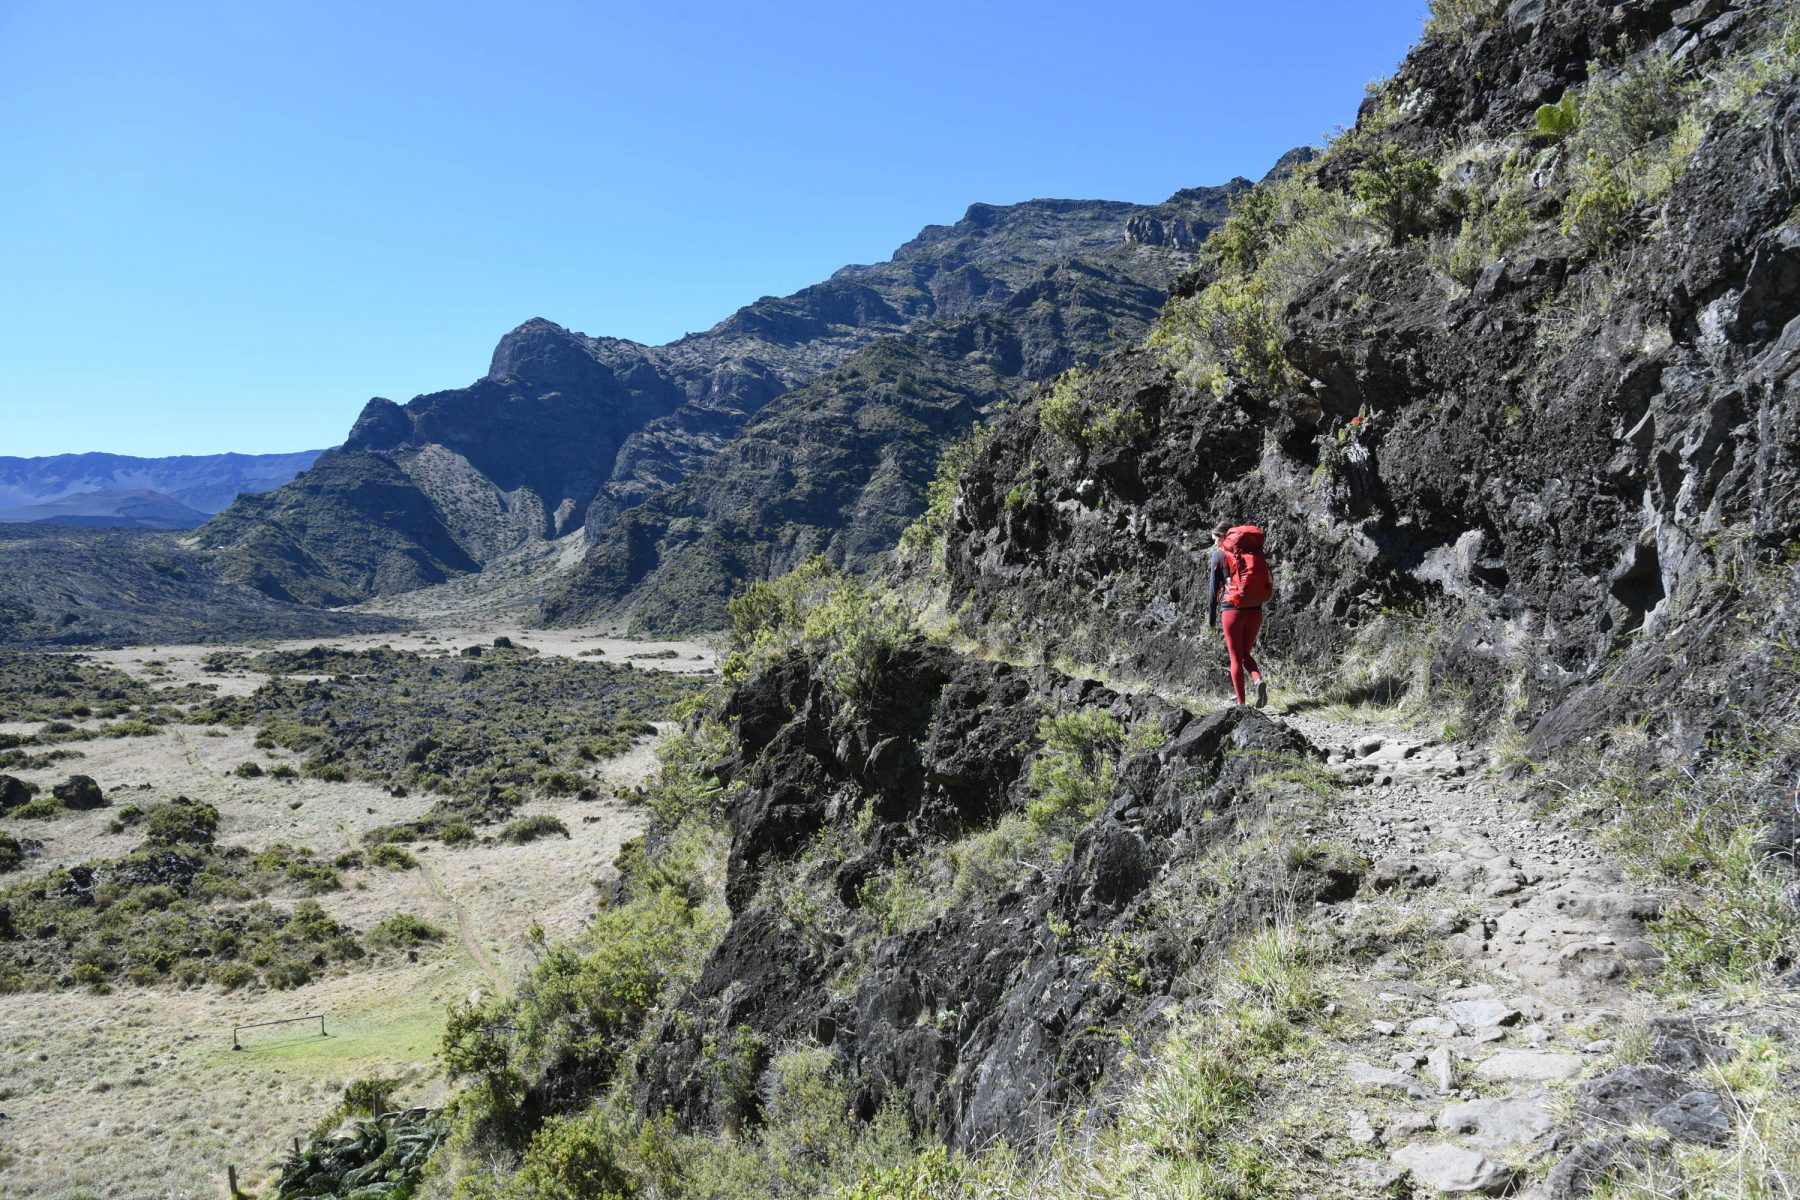 The Halemau'u Trail climbs the Haleakala Crater wall